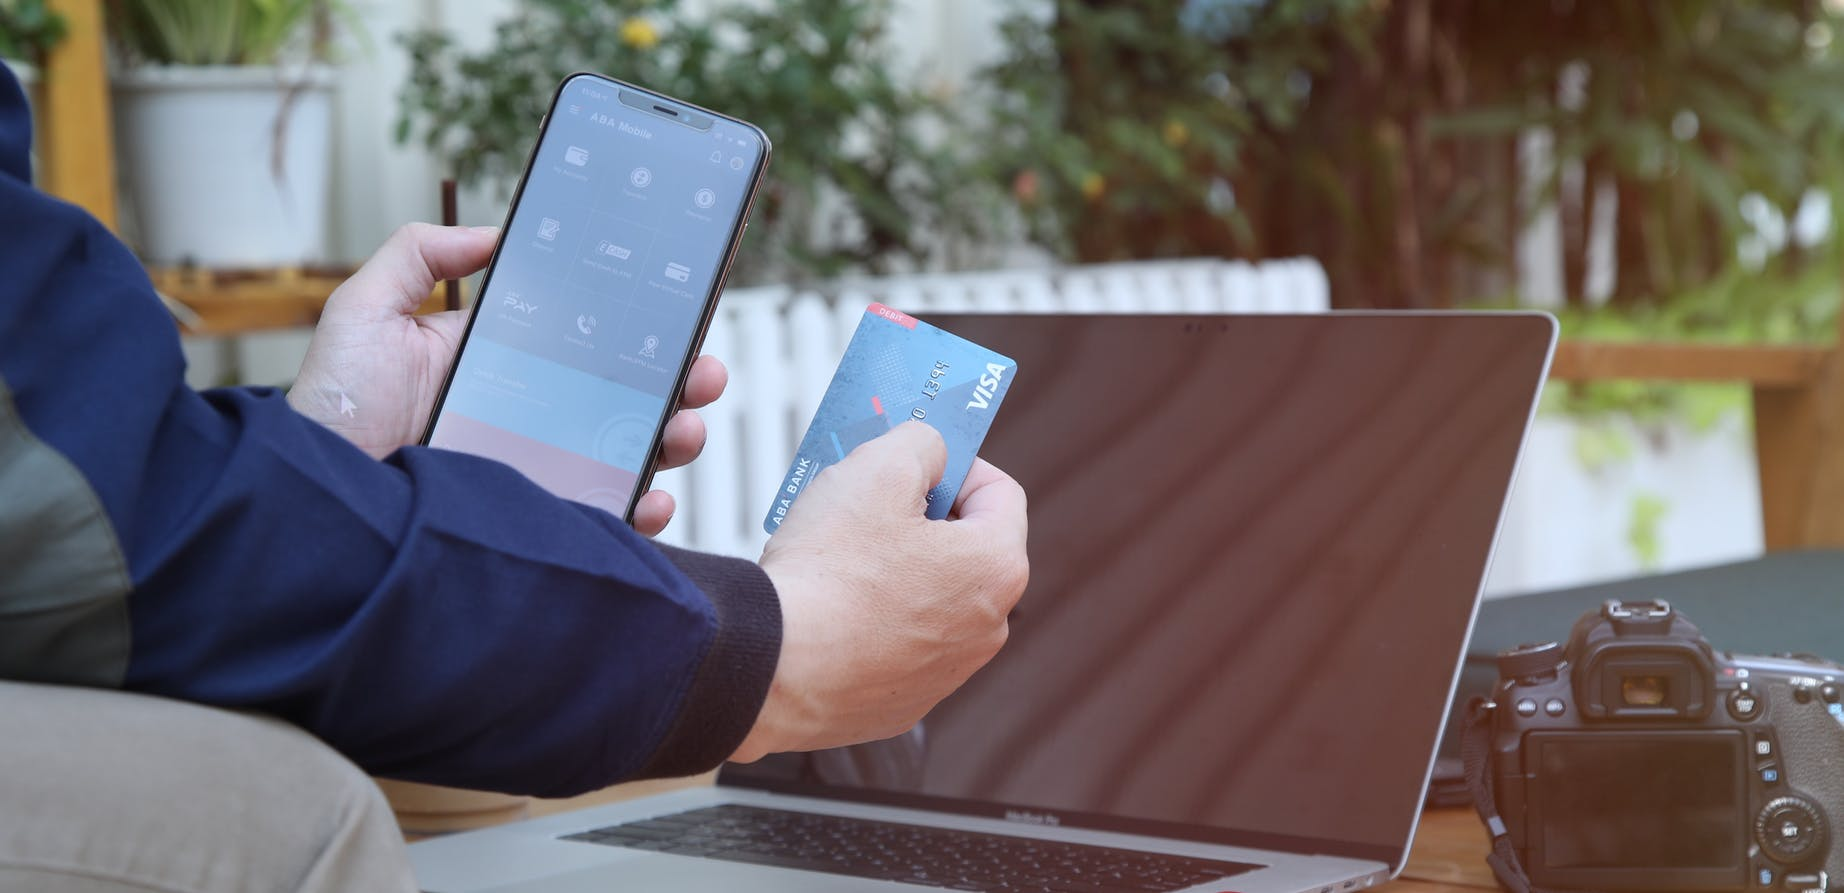 Man holding phone and credit card in front of laptop